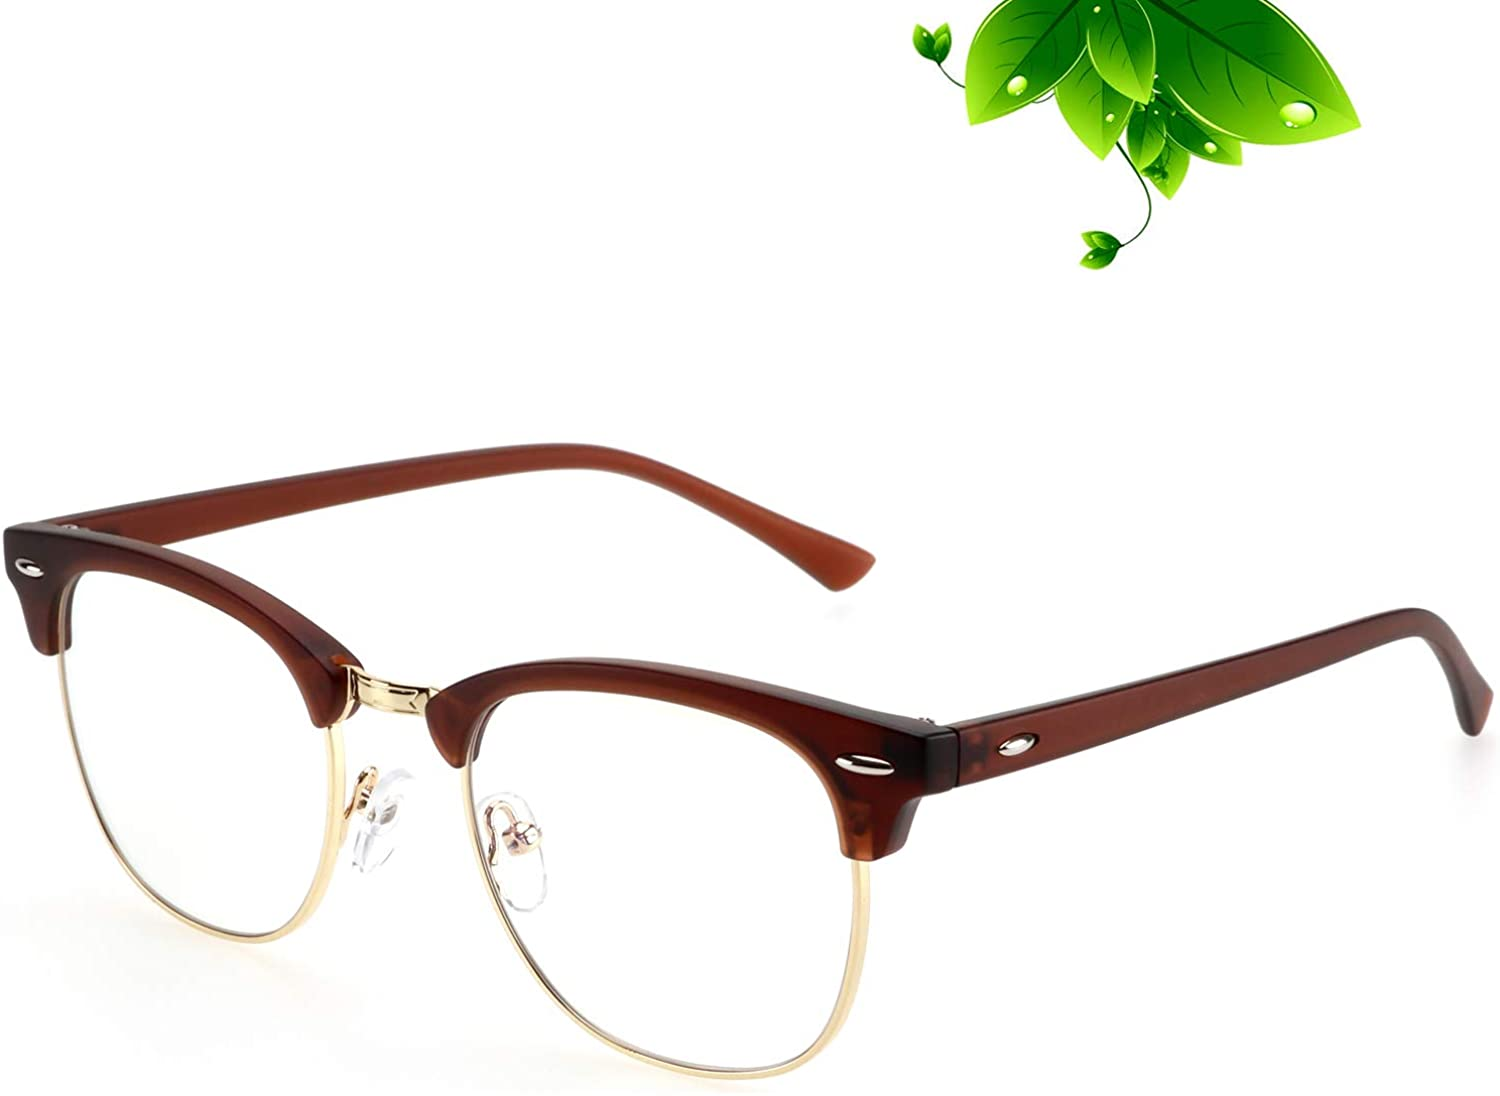 ANYLUV semi-rimmed brown blue light glasses